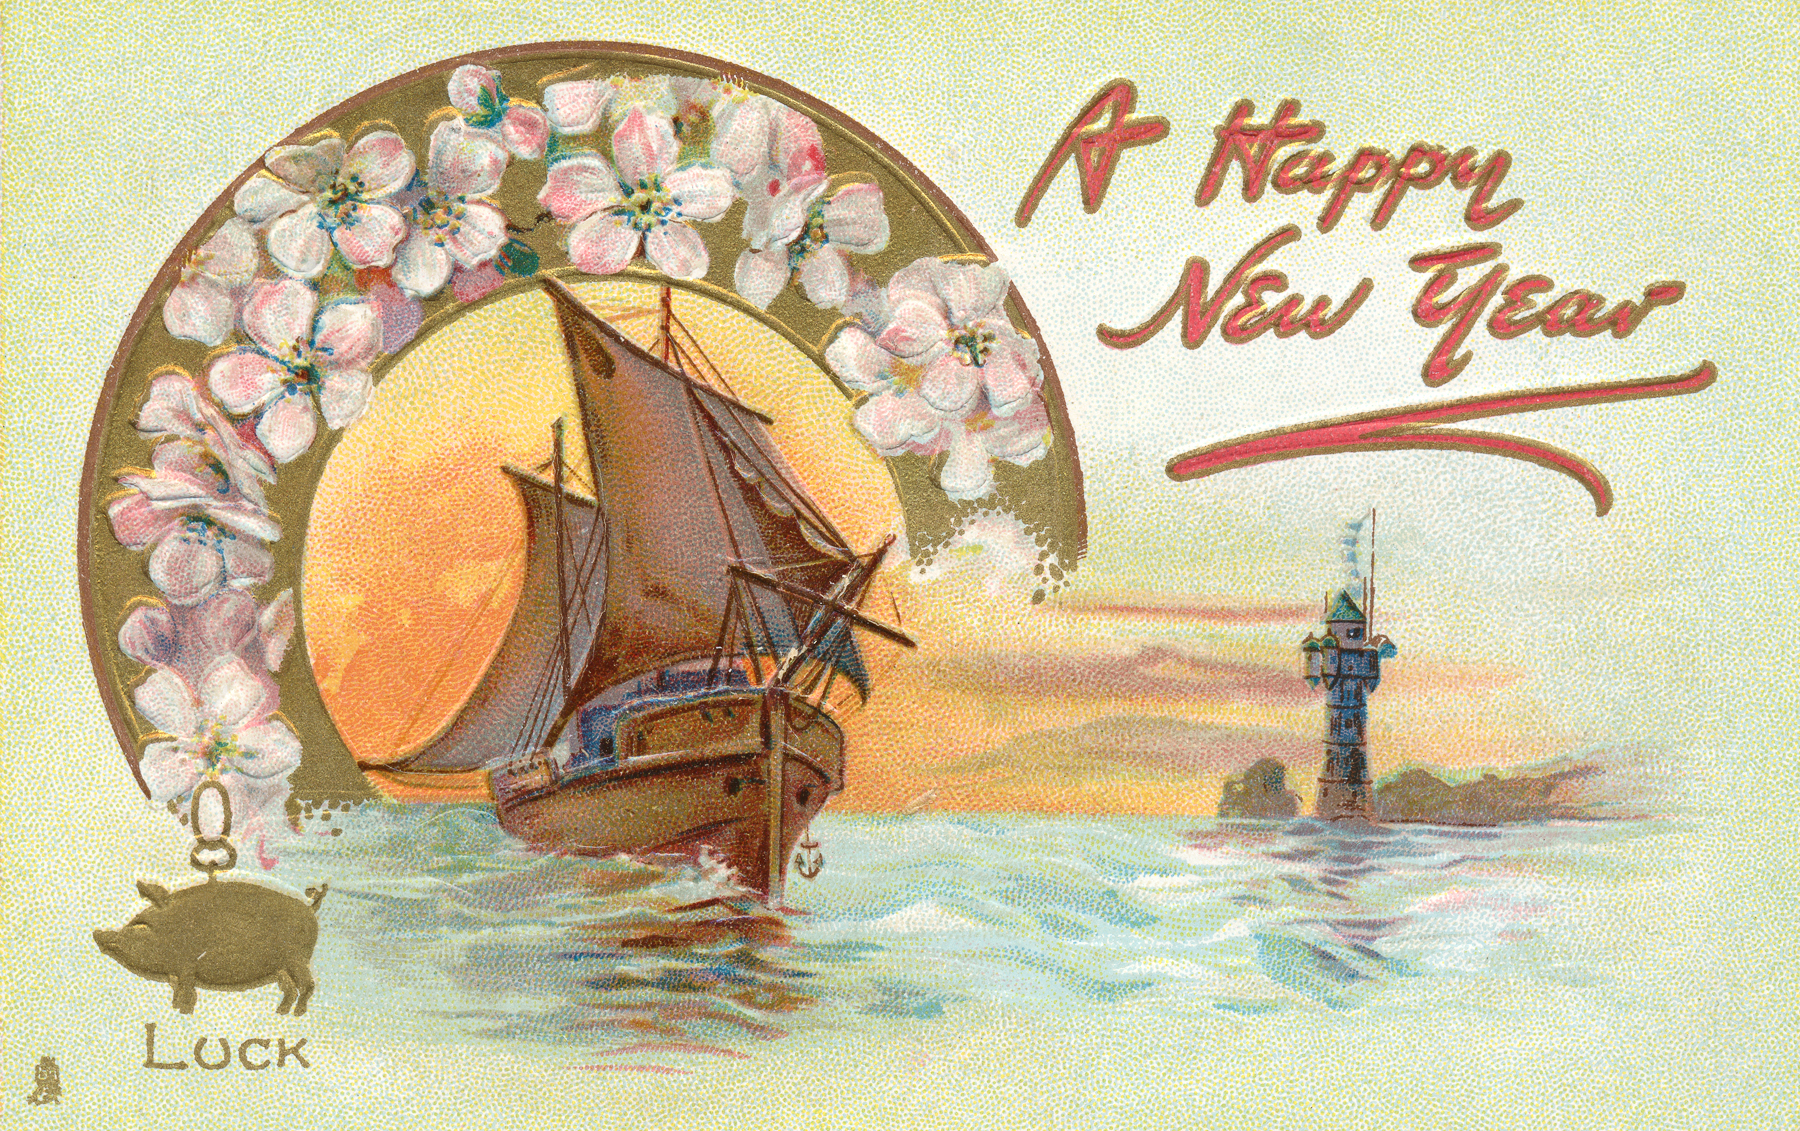 Happy new year card - circa 1908 photo